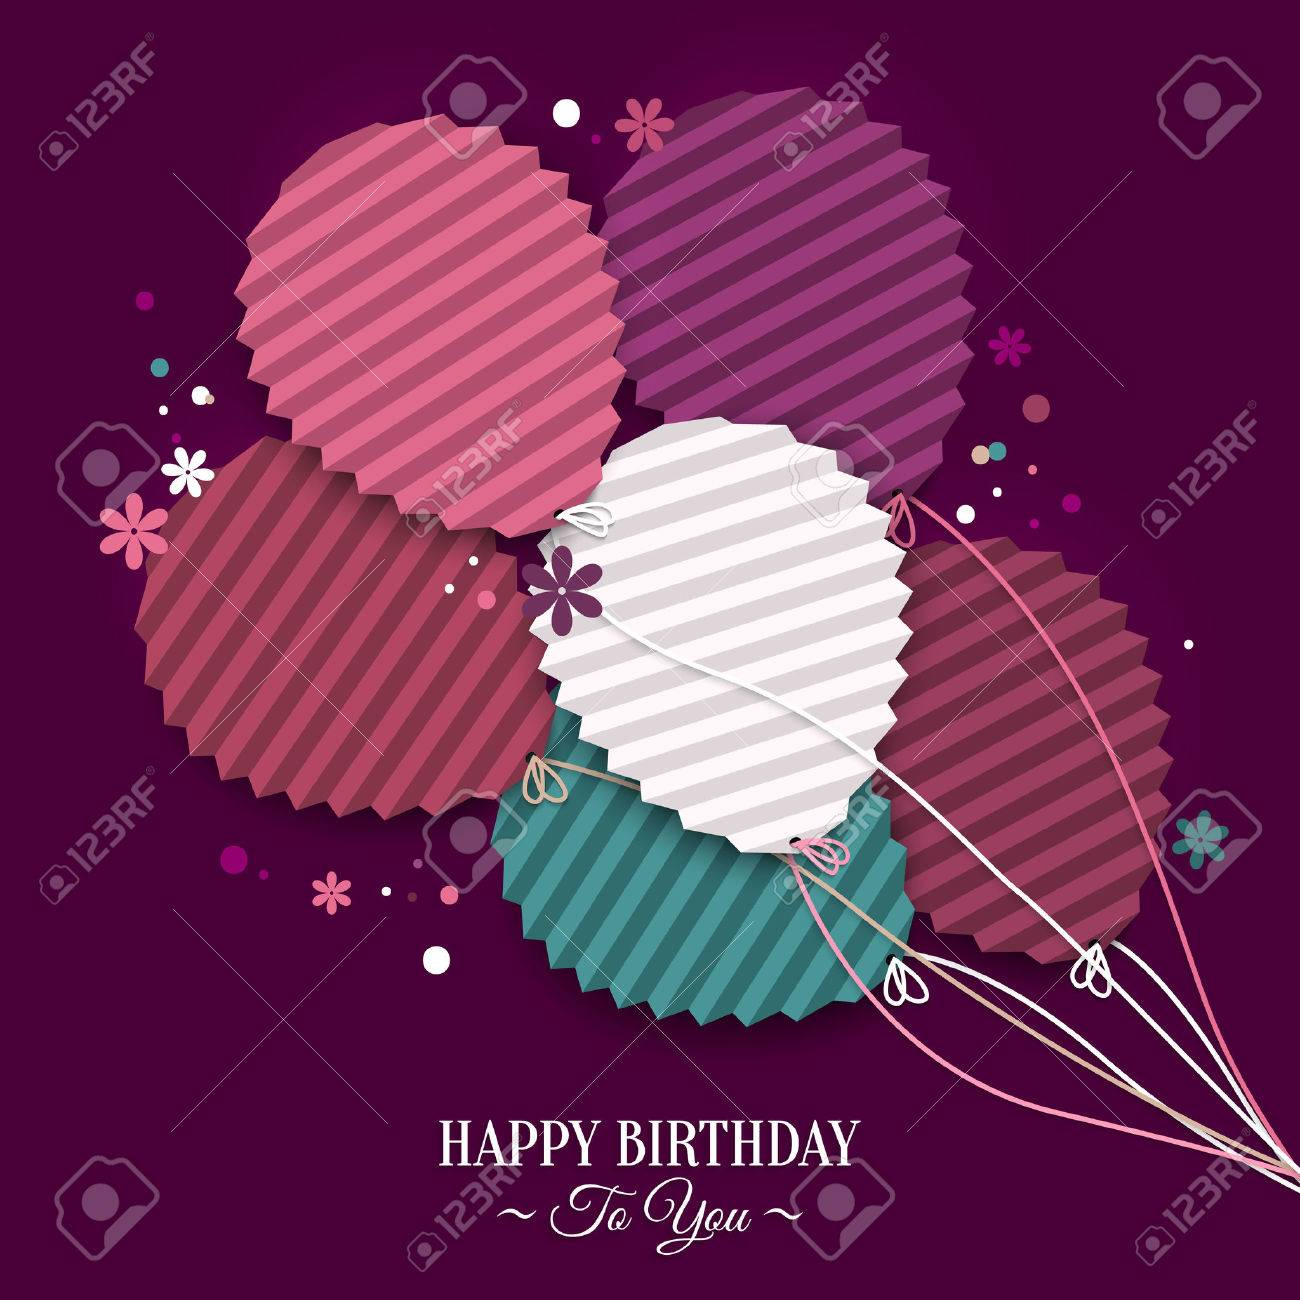 Birthday wish with balloons in the style of flat folded paper. - 35590849